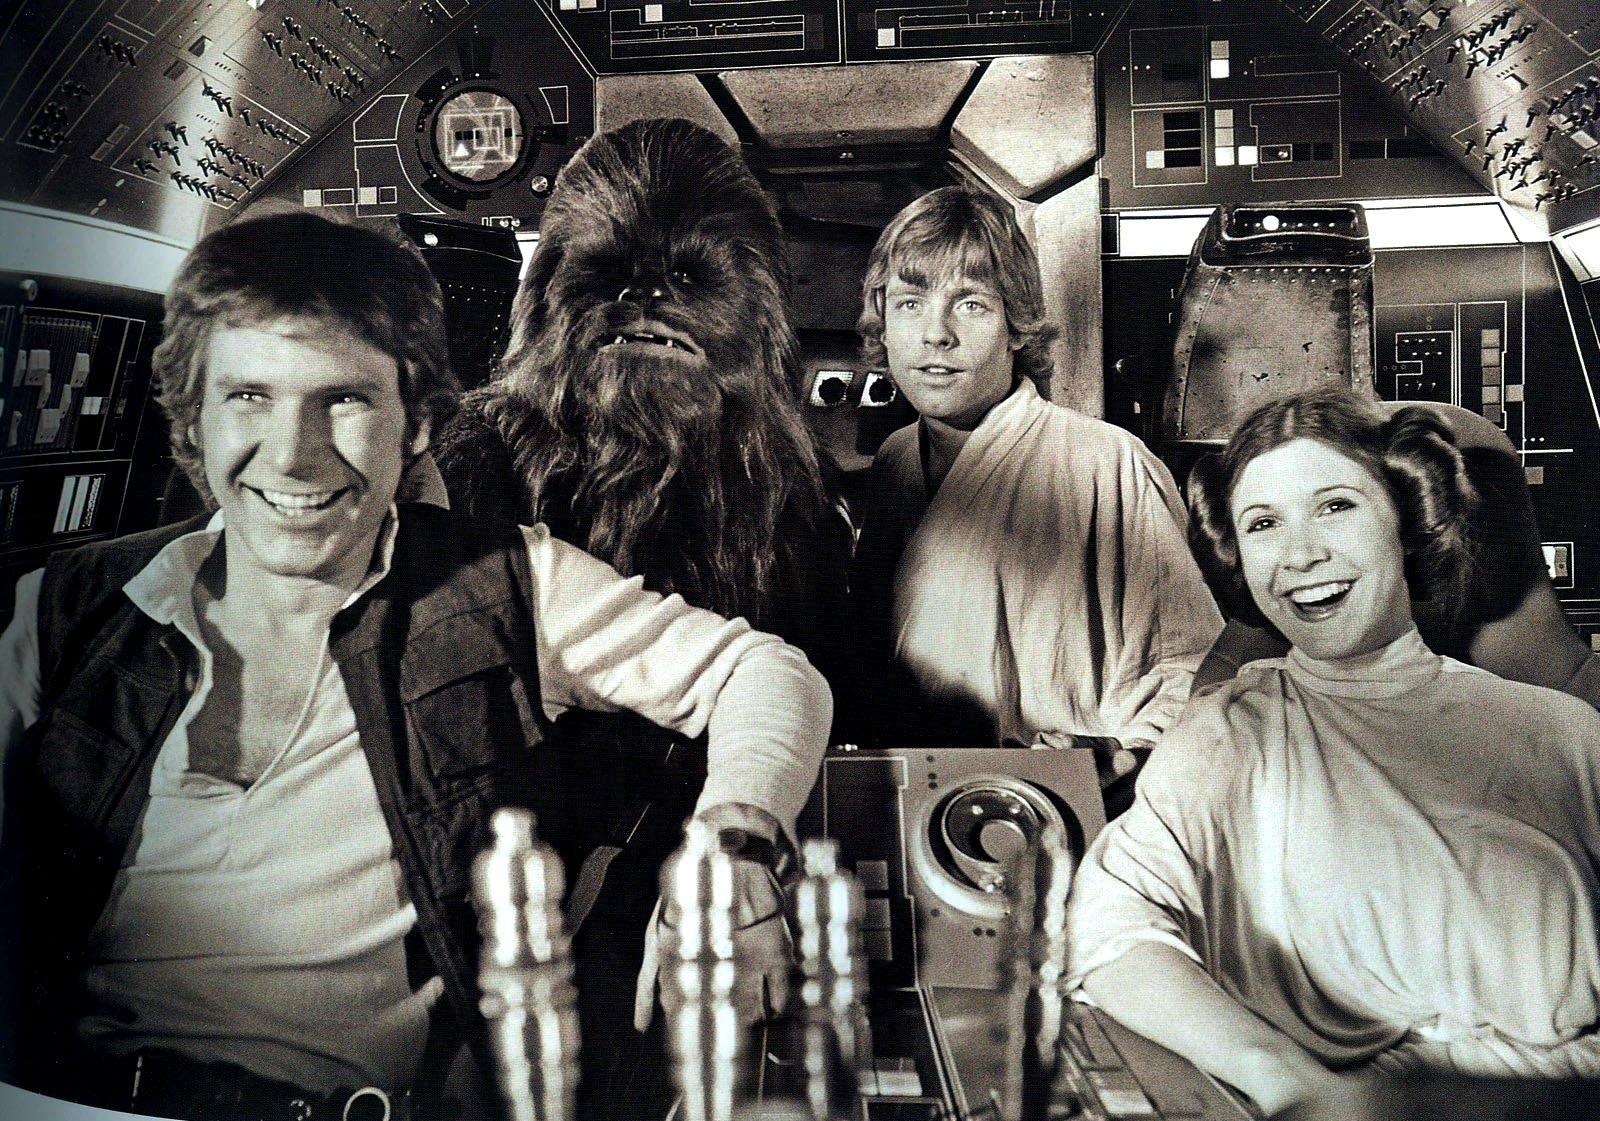 Chewie Luke Leia and Han